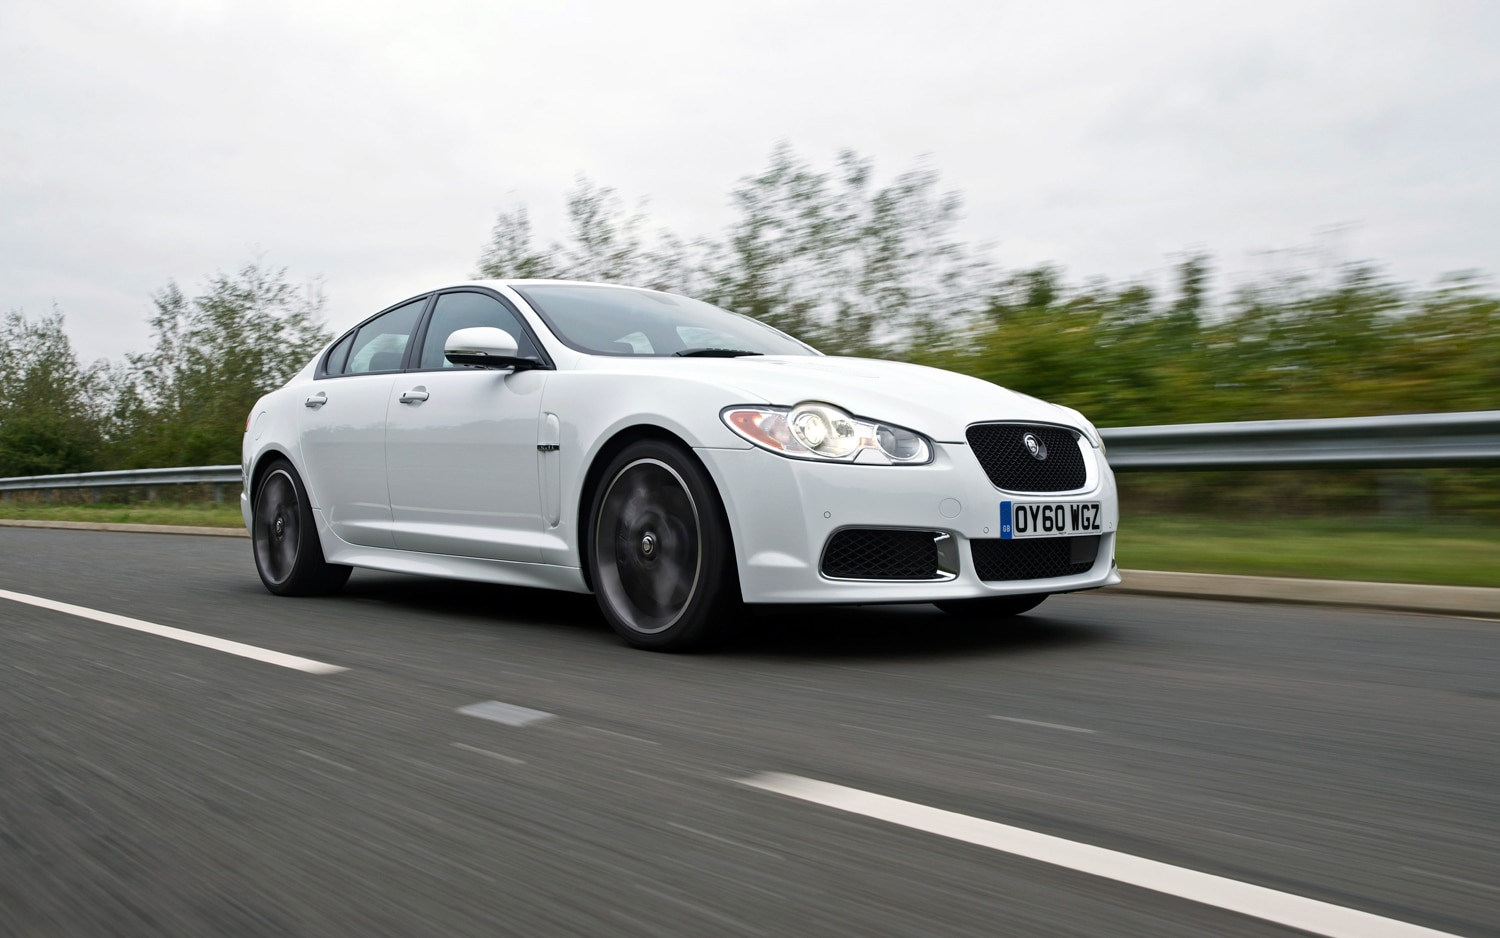 2011 Jaguar XFR Front Right Side View Driving2